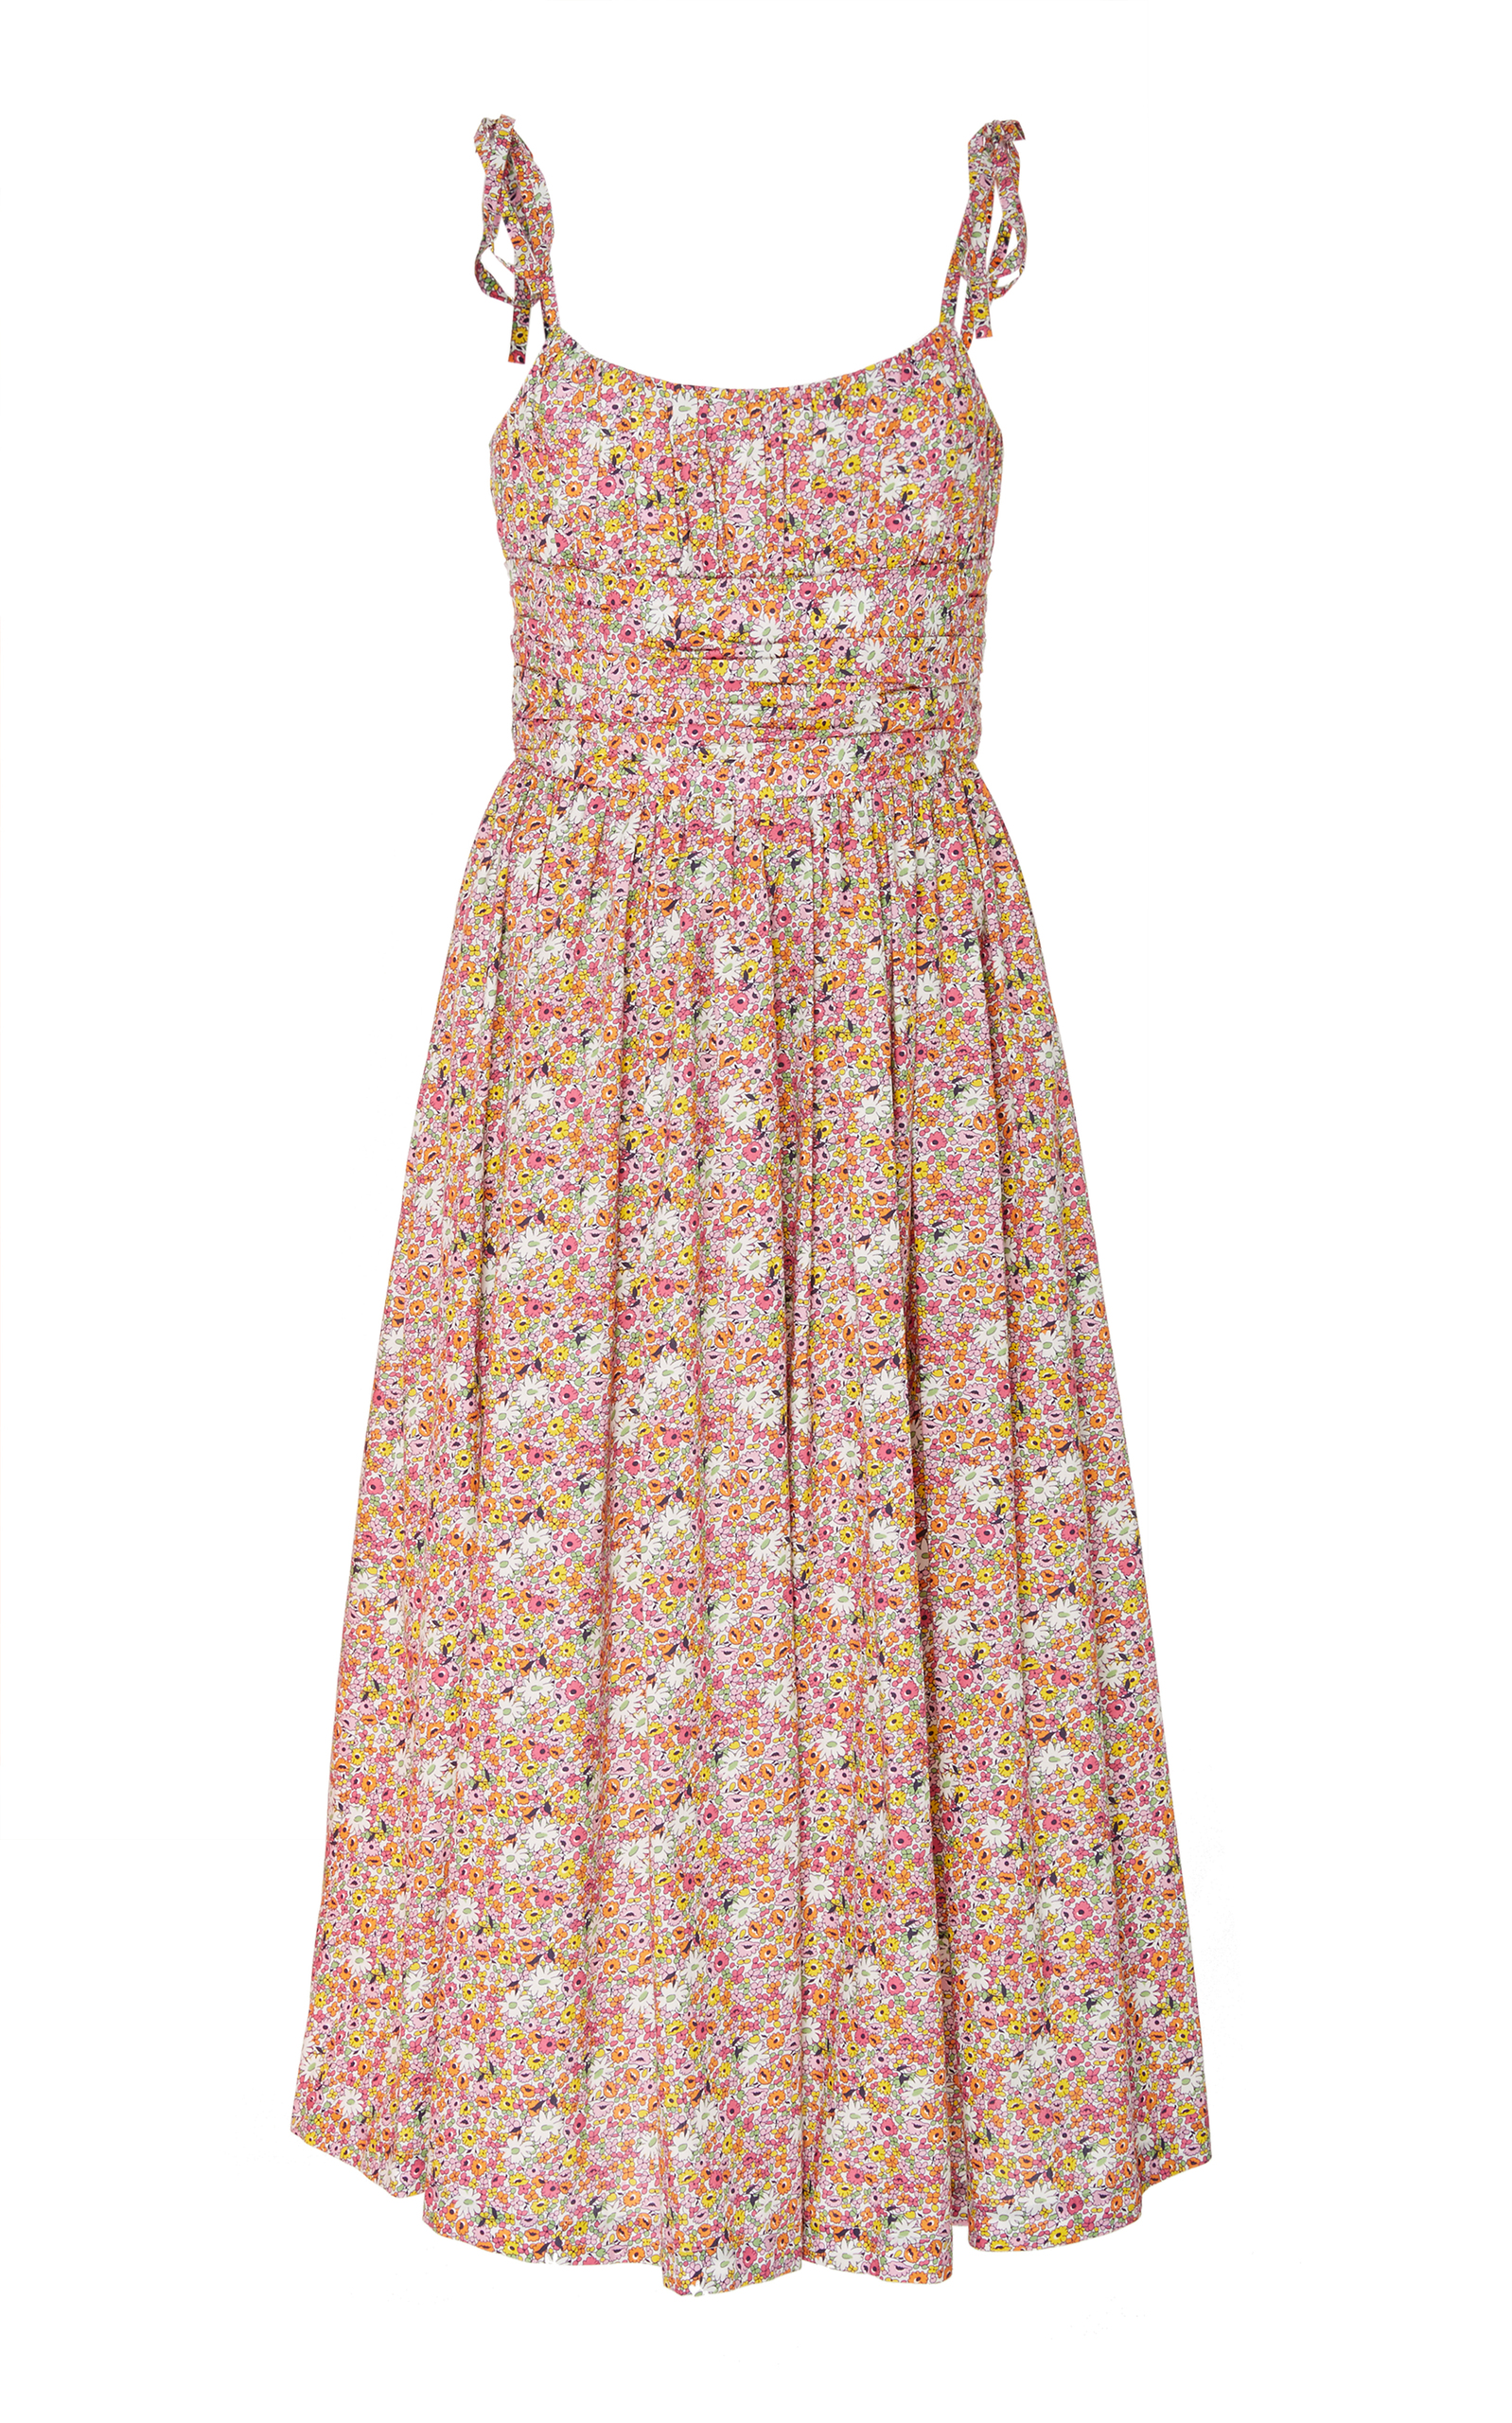 Cami Dress With Shearing in Floral